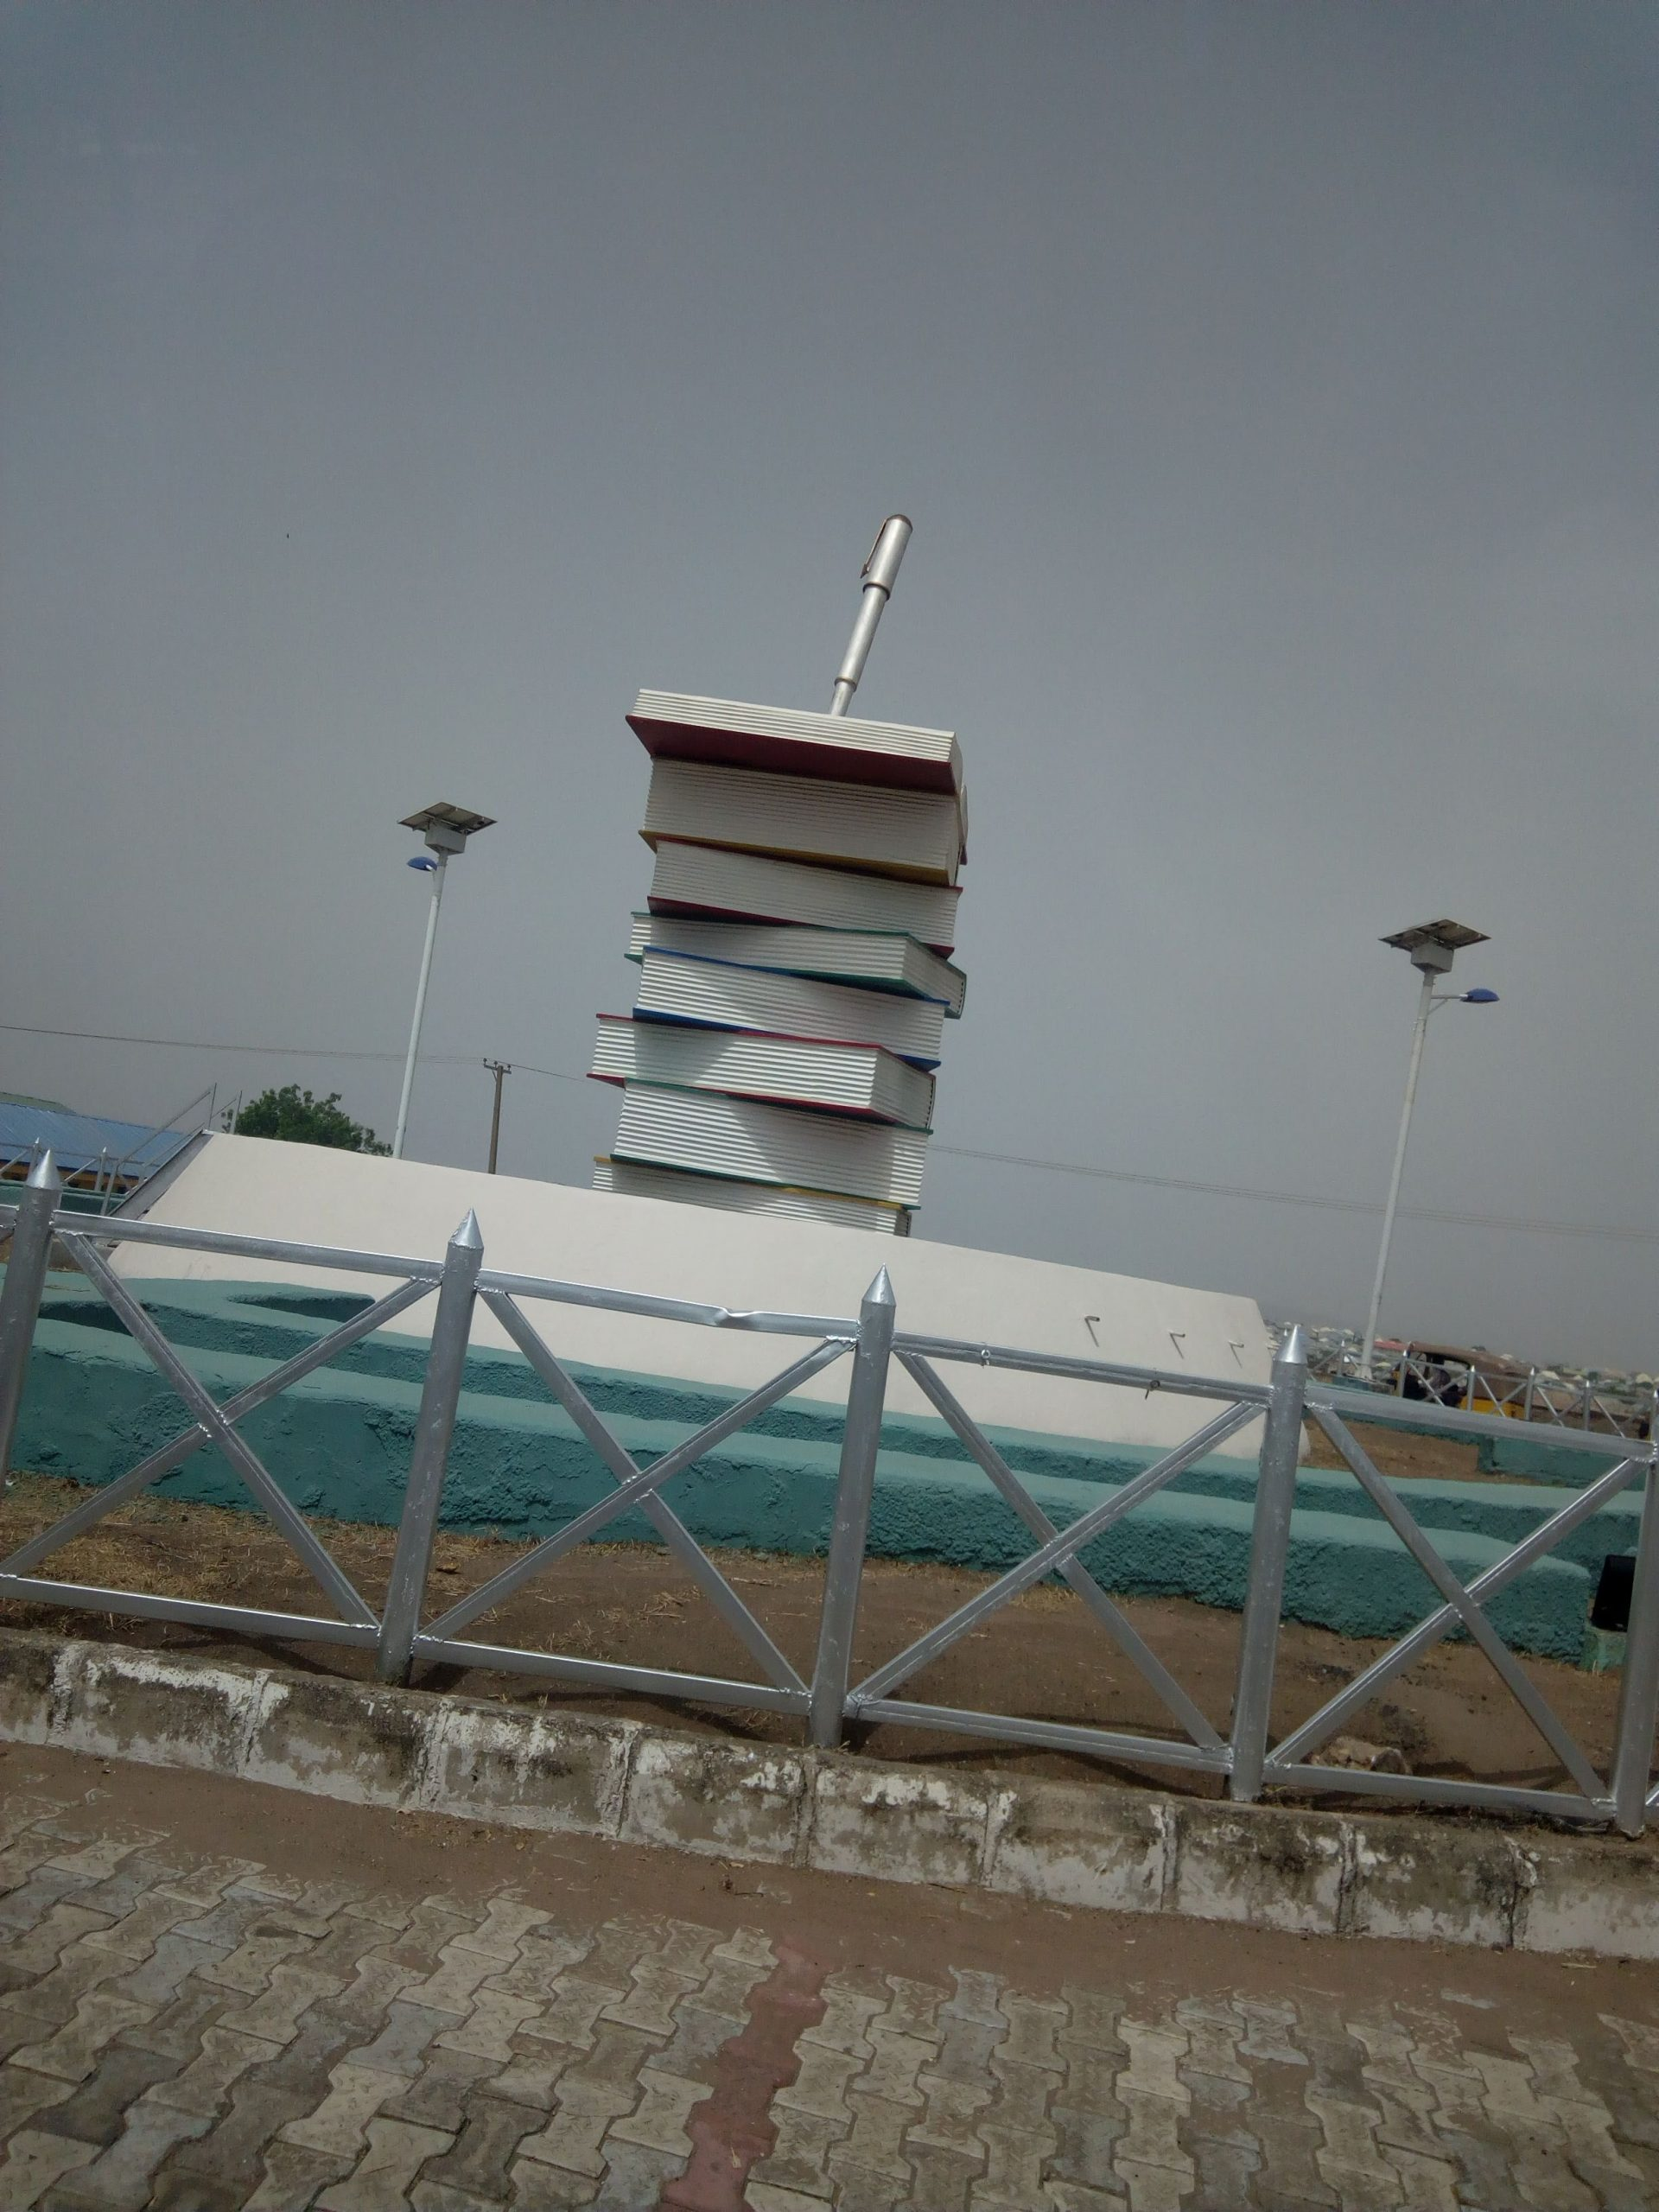 Book-stack design on another Niger road (Credit: Yusuf Akinpelu).